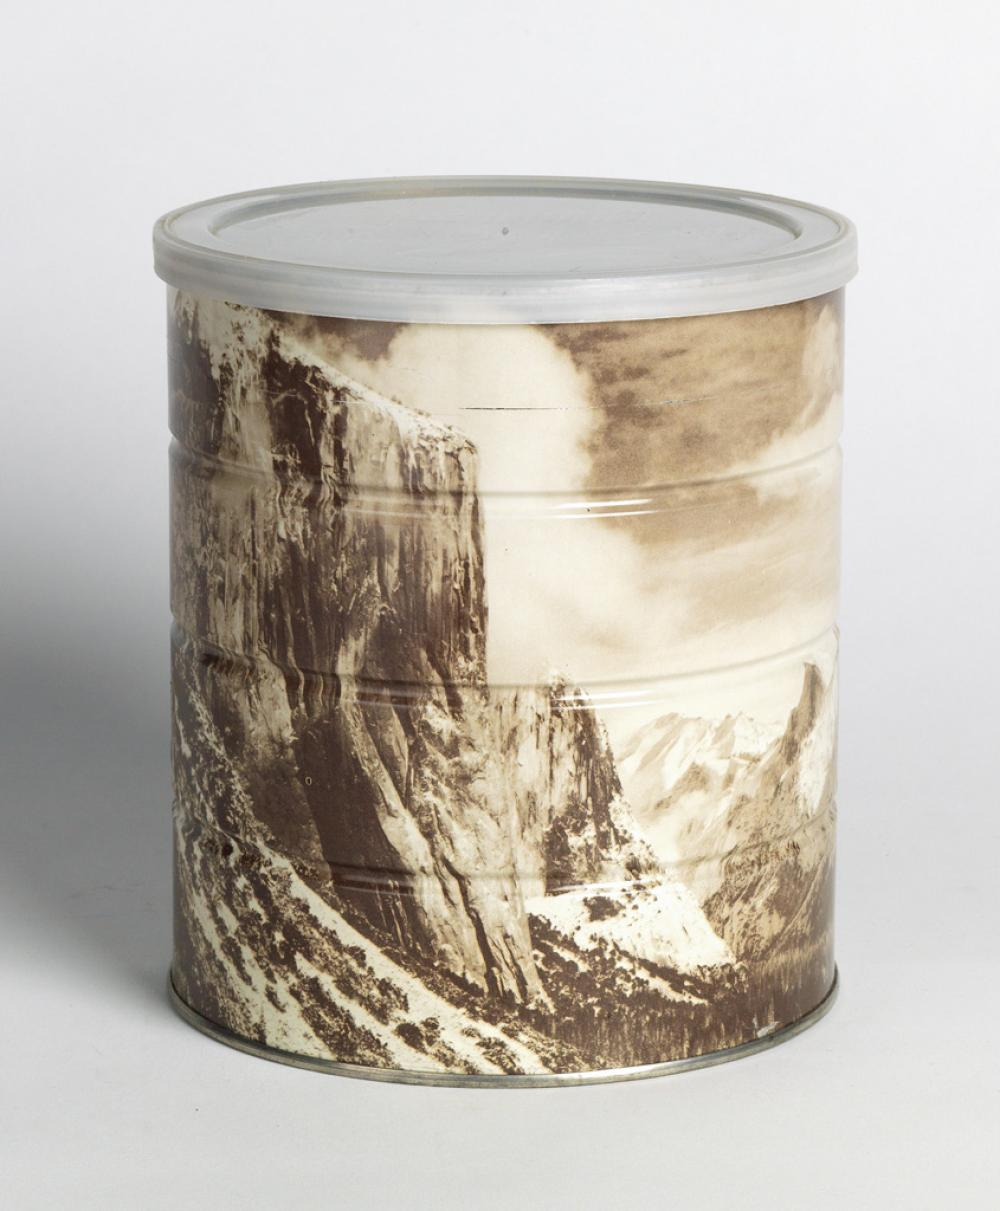 (ANSEL ADAMS) Hills Brothers coffee can, with a wraparound image of Adams' Winter Morning, Yosemite Valley.